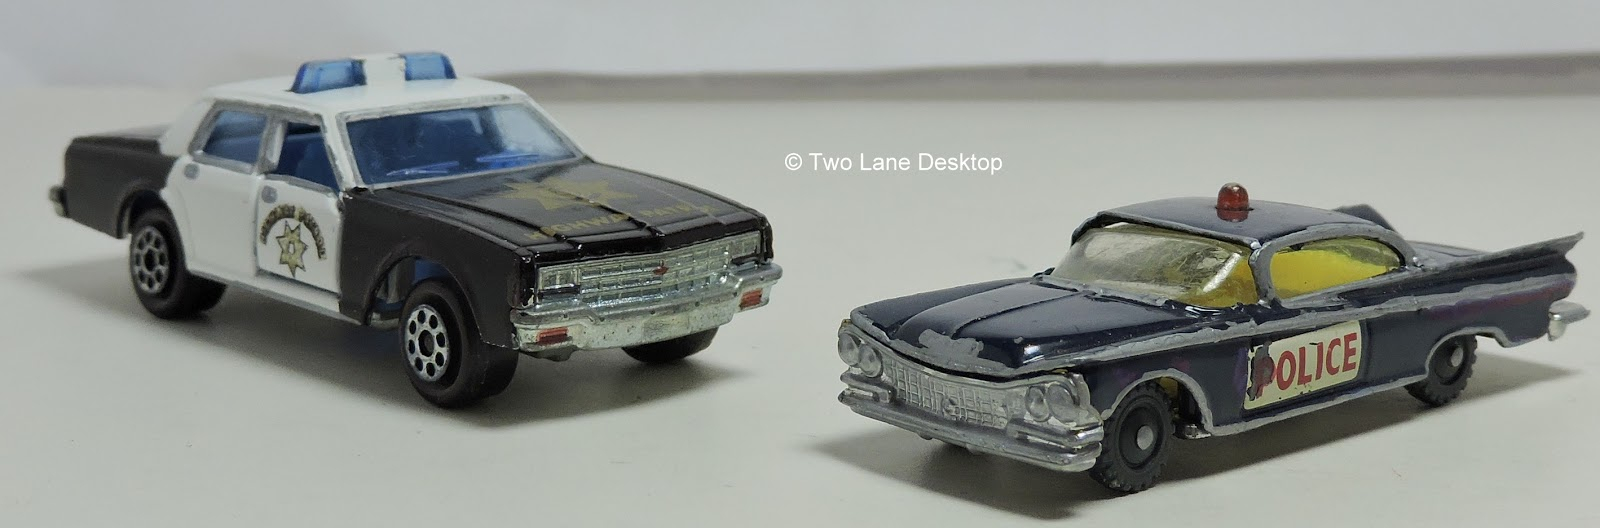 Husky 1959 Buick Electra police and Majorette 1980 Chevrolet